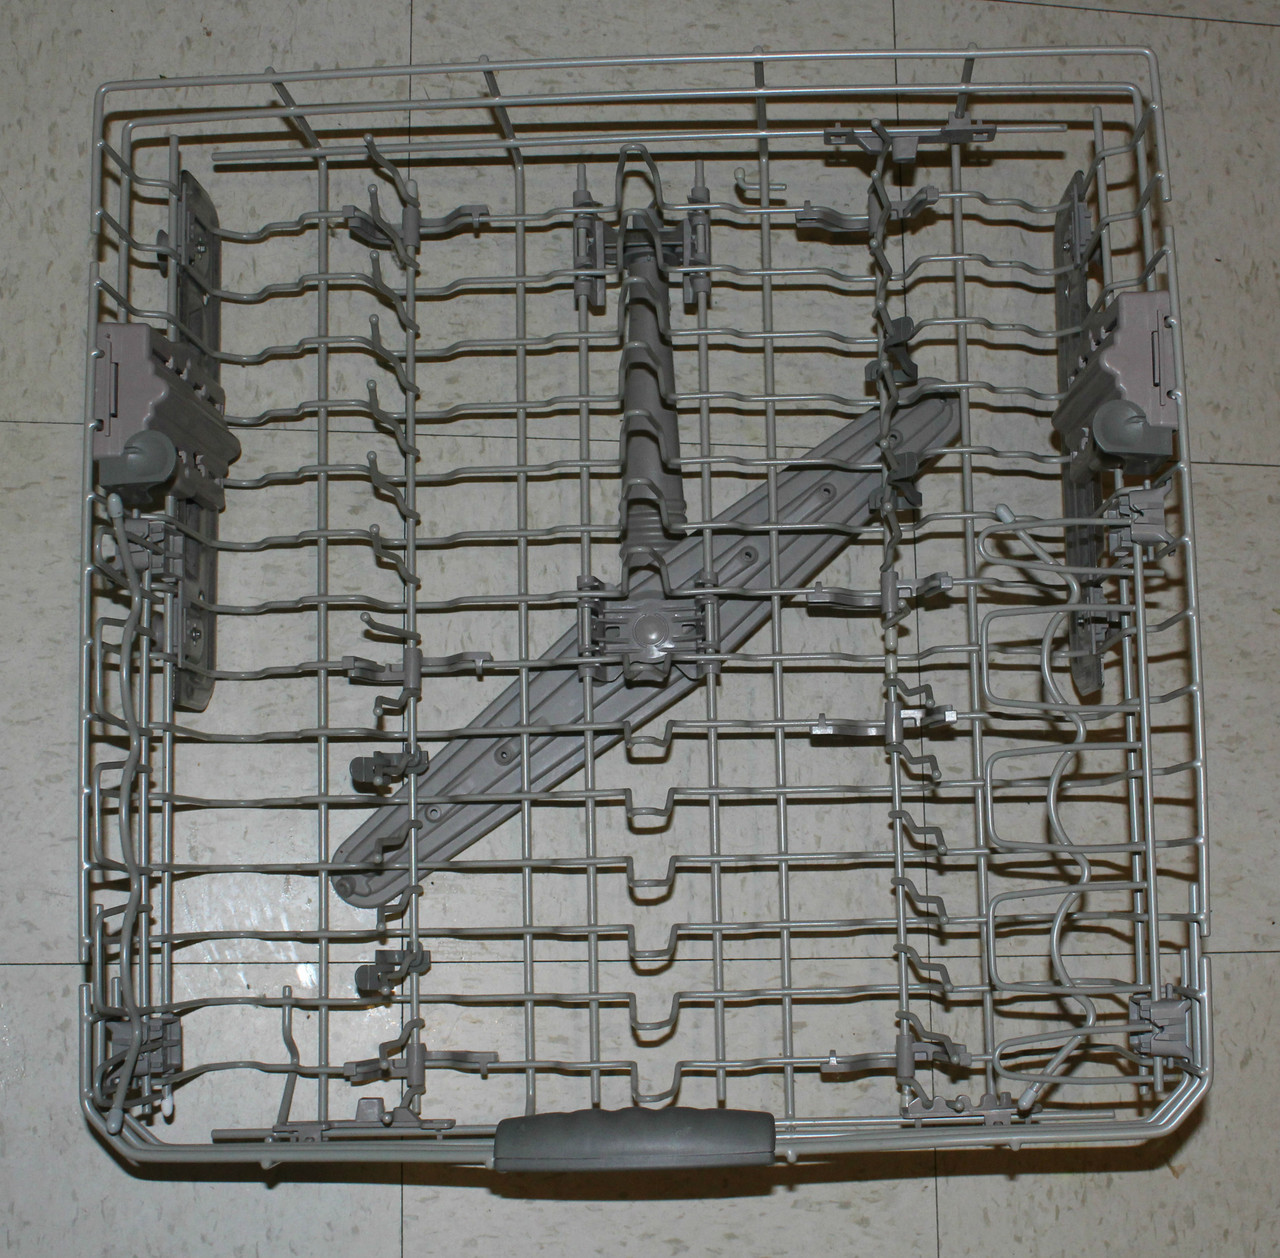 Lower Rack Parts Diagram And Parts List For Whirlpool Dishwasherparts